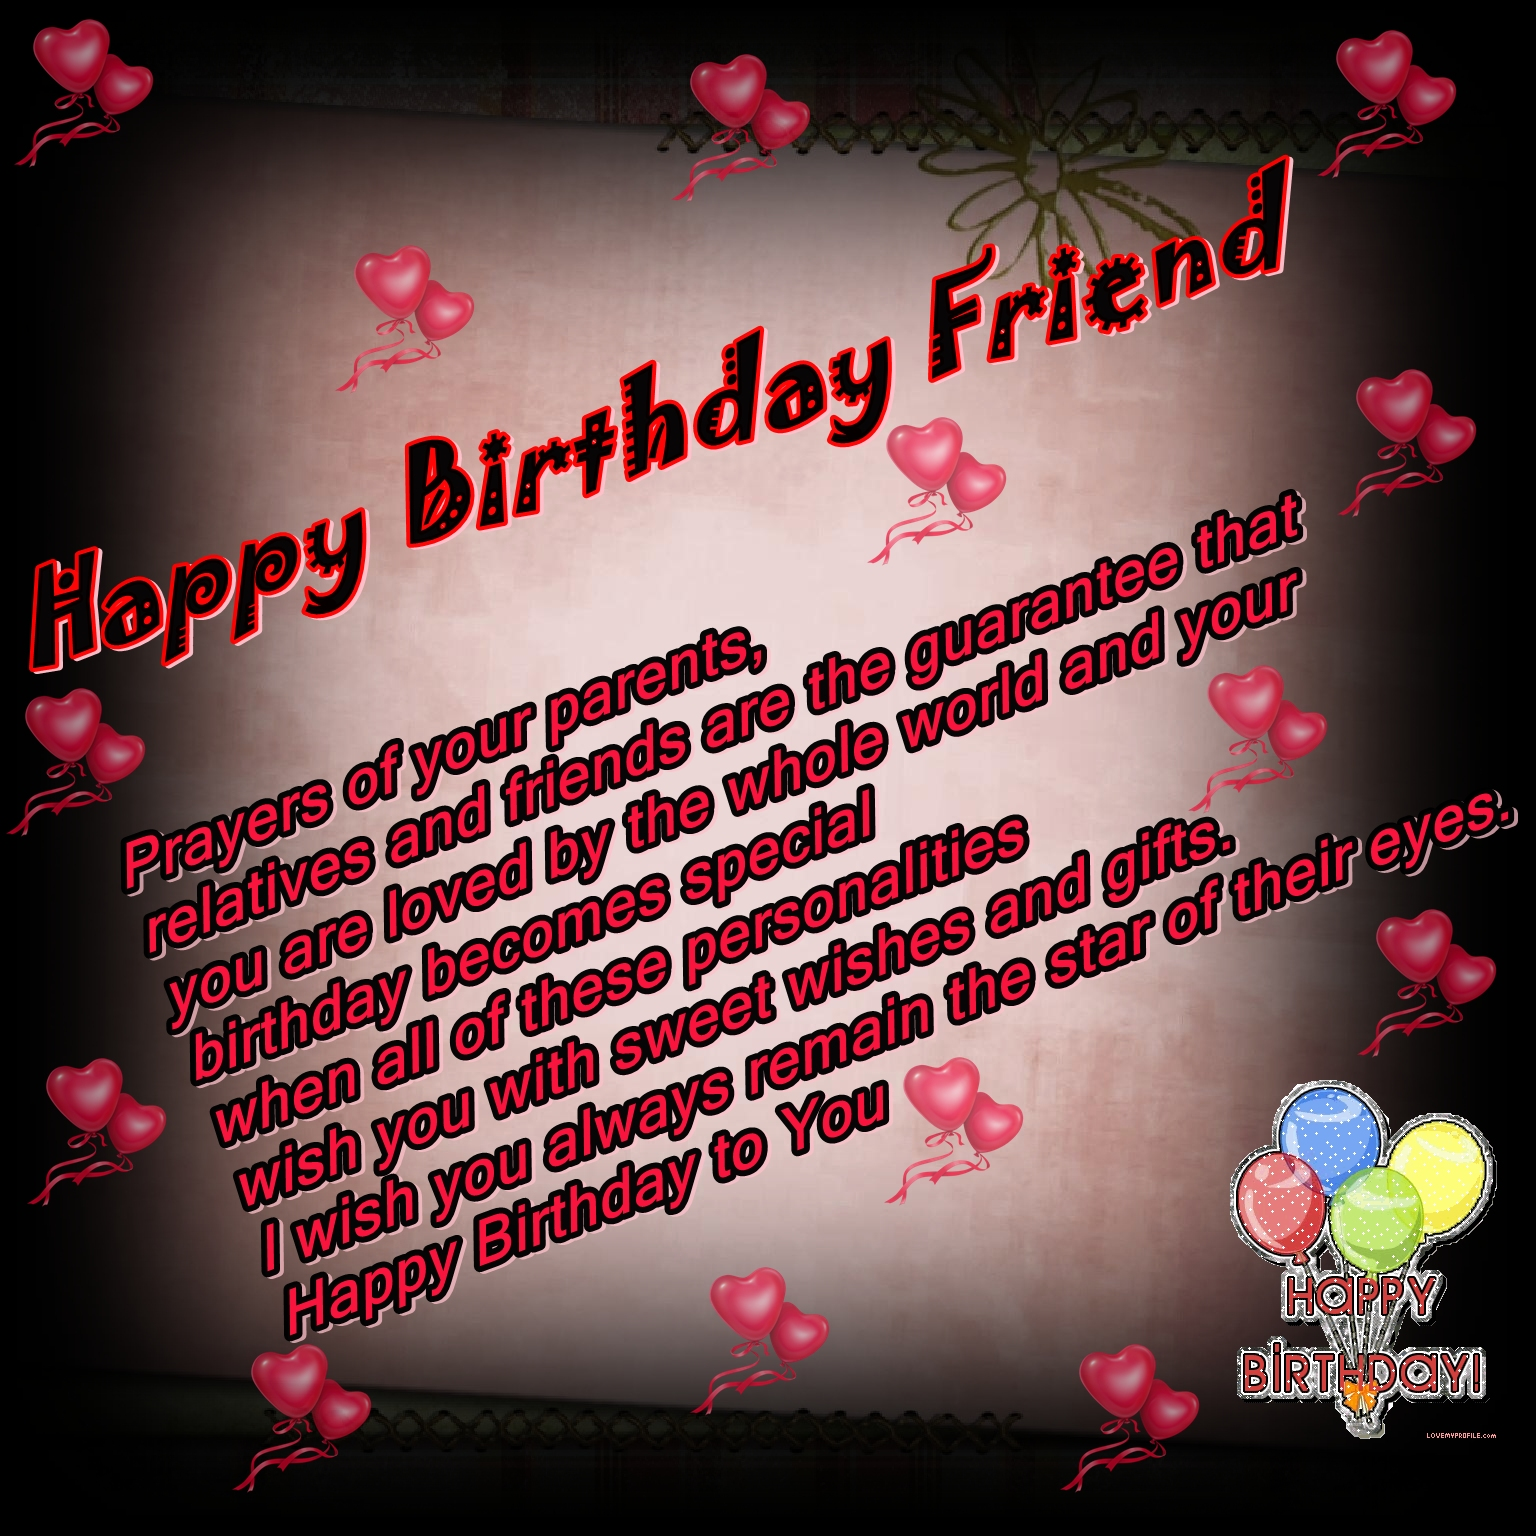 Birthday Wishes For Best Friend Quotes Tumblr: 40th Birthday Quotes For Friends. QuotesGram